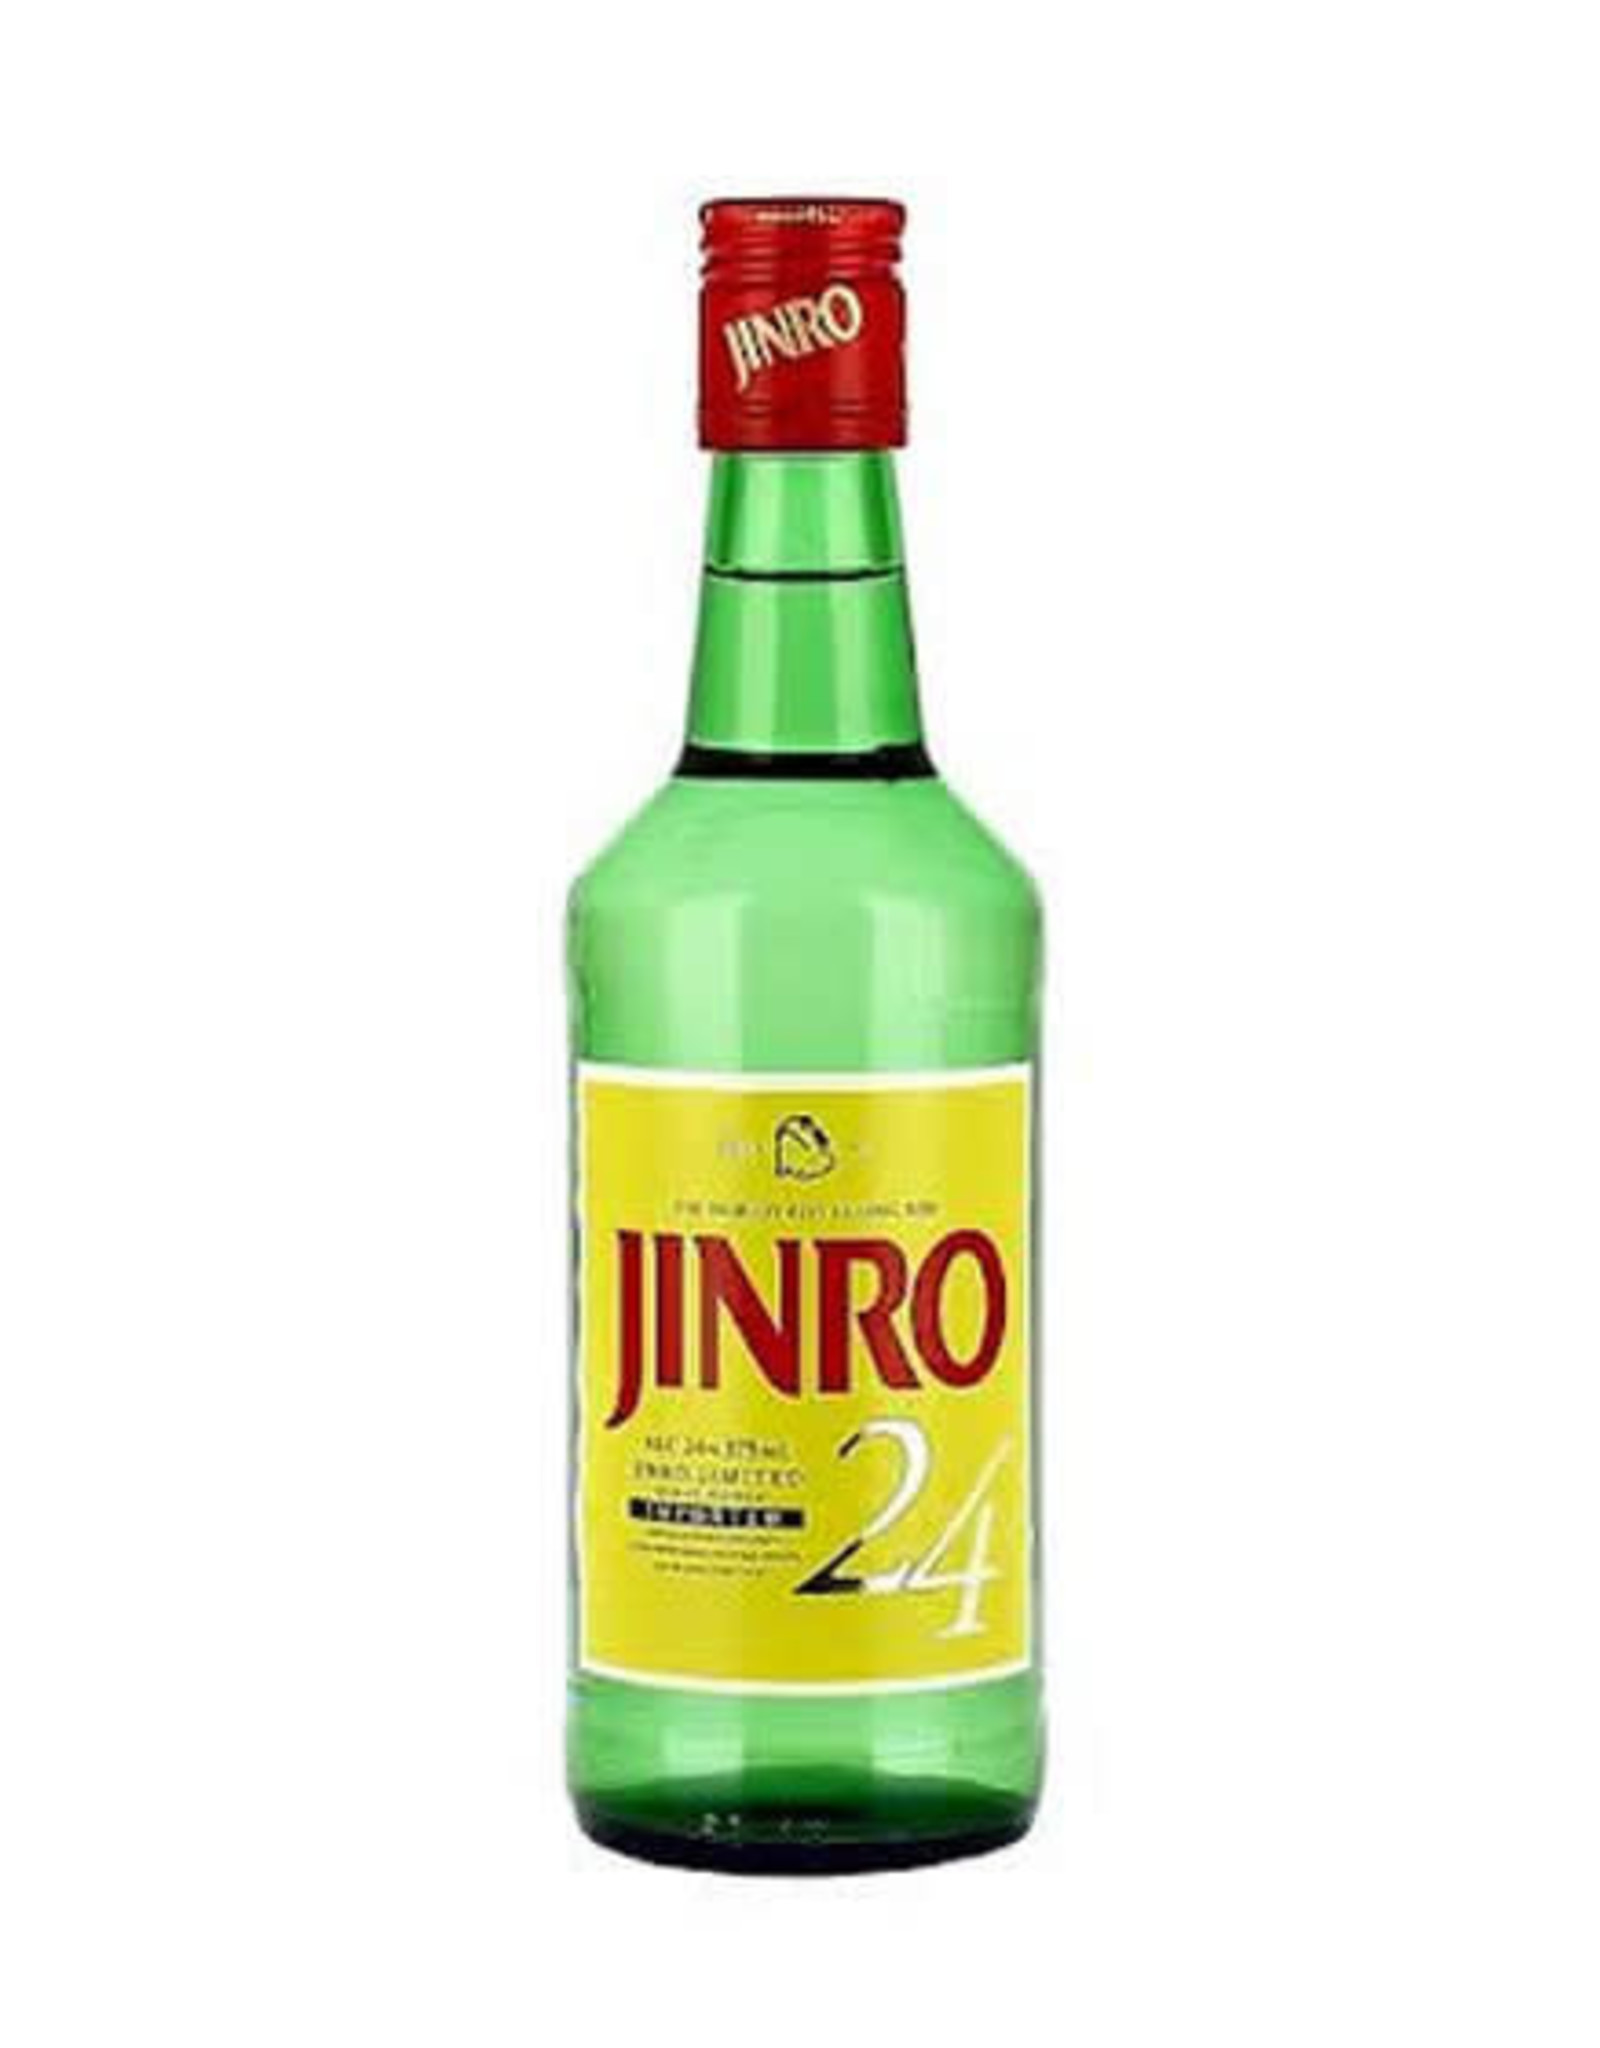 JINRO SOJU 24 375mL